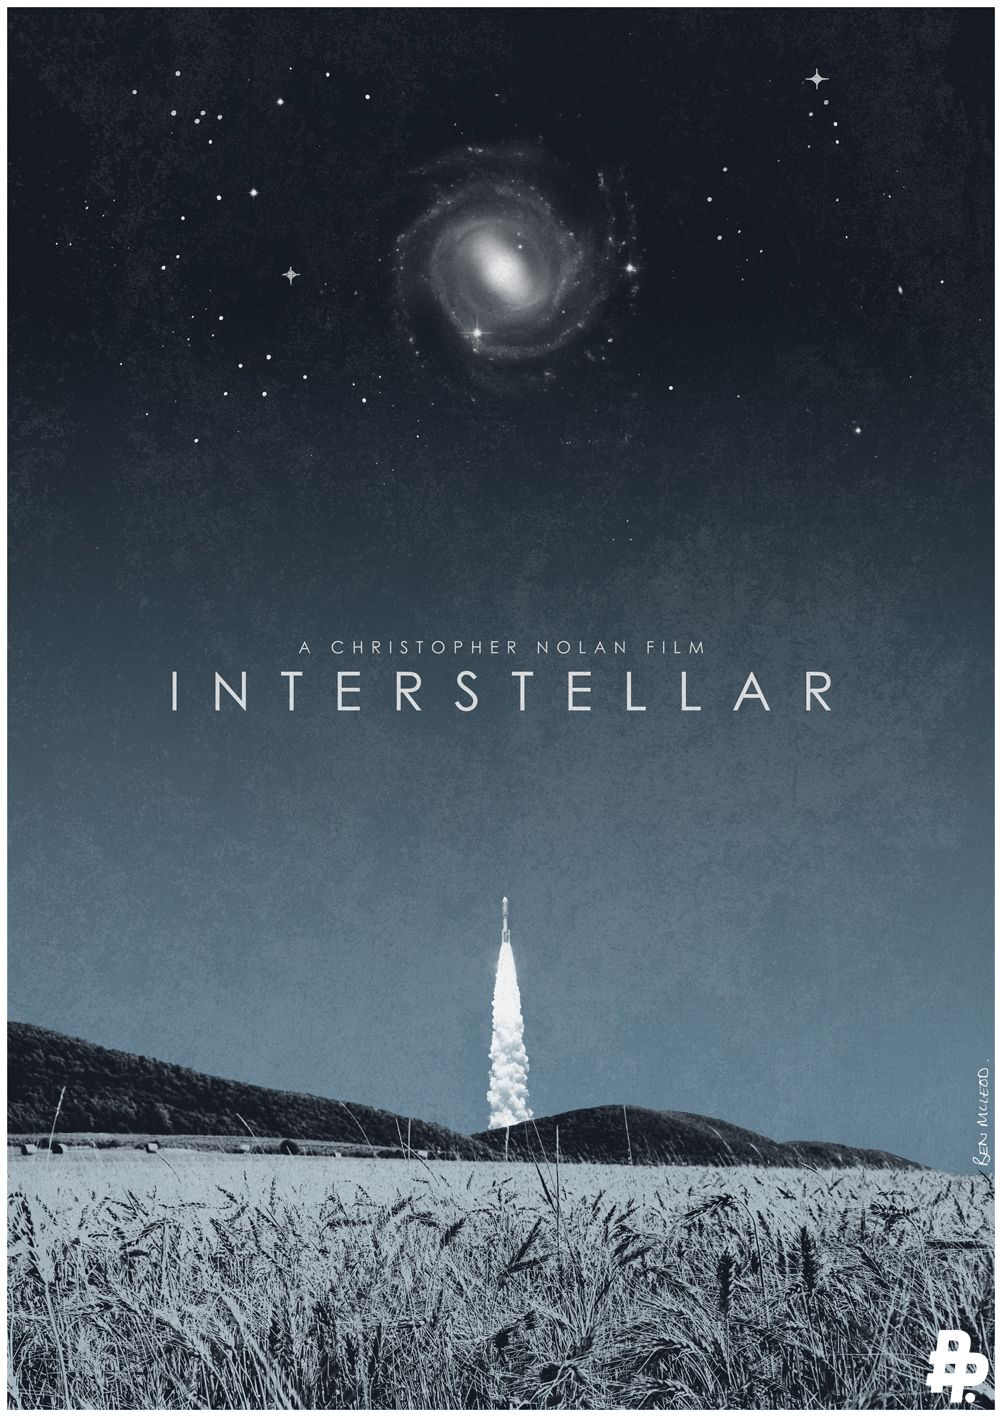 Interstellar - movie poster - Ben McLeod. Comment: I think I'll skip this movie. Here's why: http://truthtalltales.blogspot.com/2014/11/galaxy-jest.html